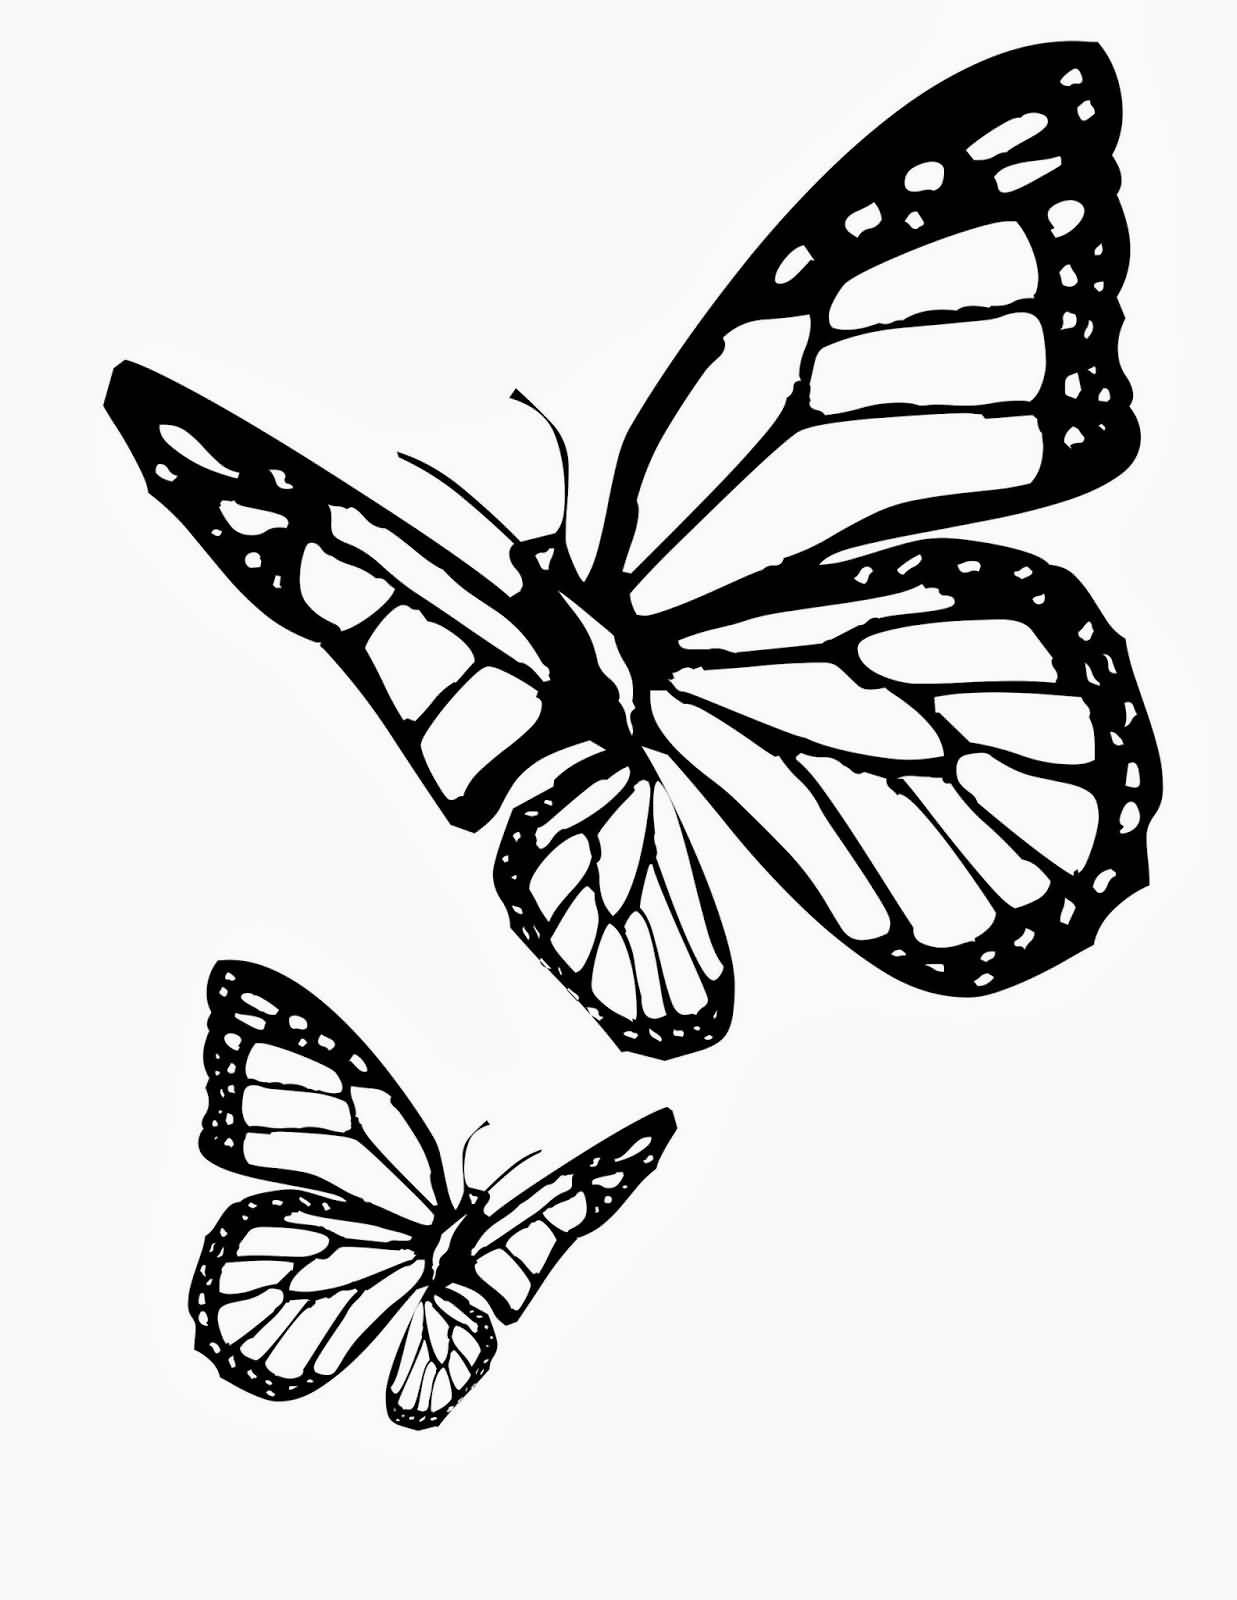 10 Impressive Butterfly Tattoo Designs Golfian Com With Images